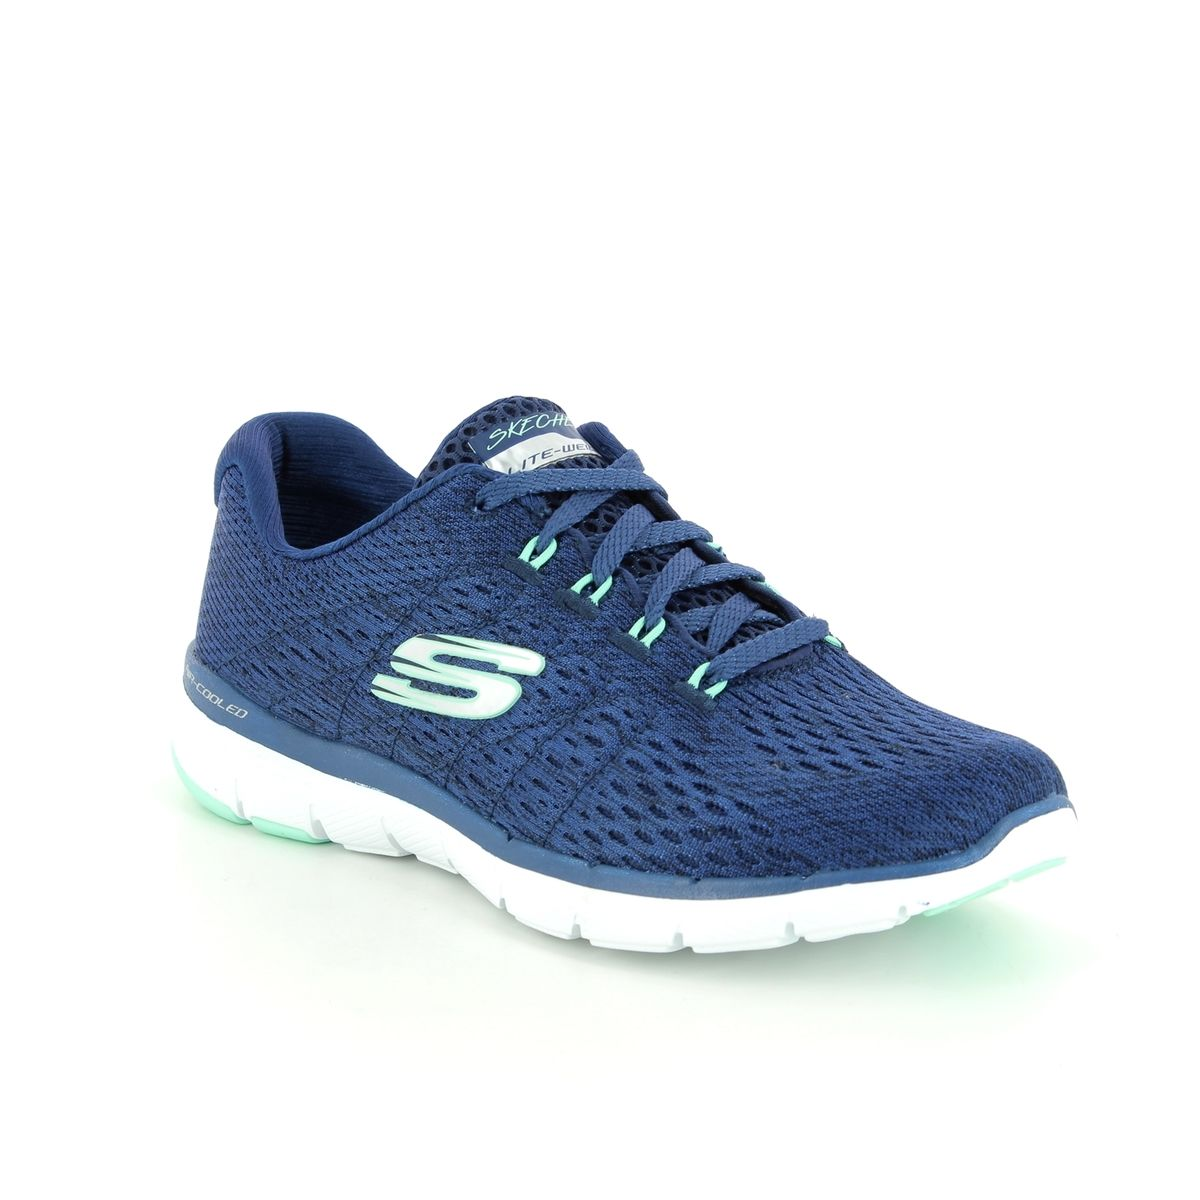 37581c3acb3 Skechers Flex Appeal 3 13064 NVGR Navy trainers